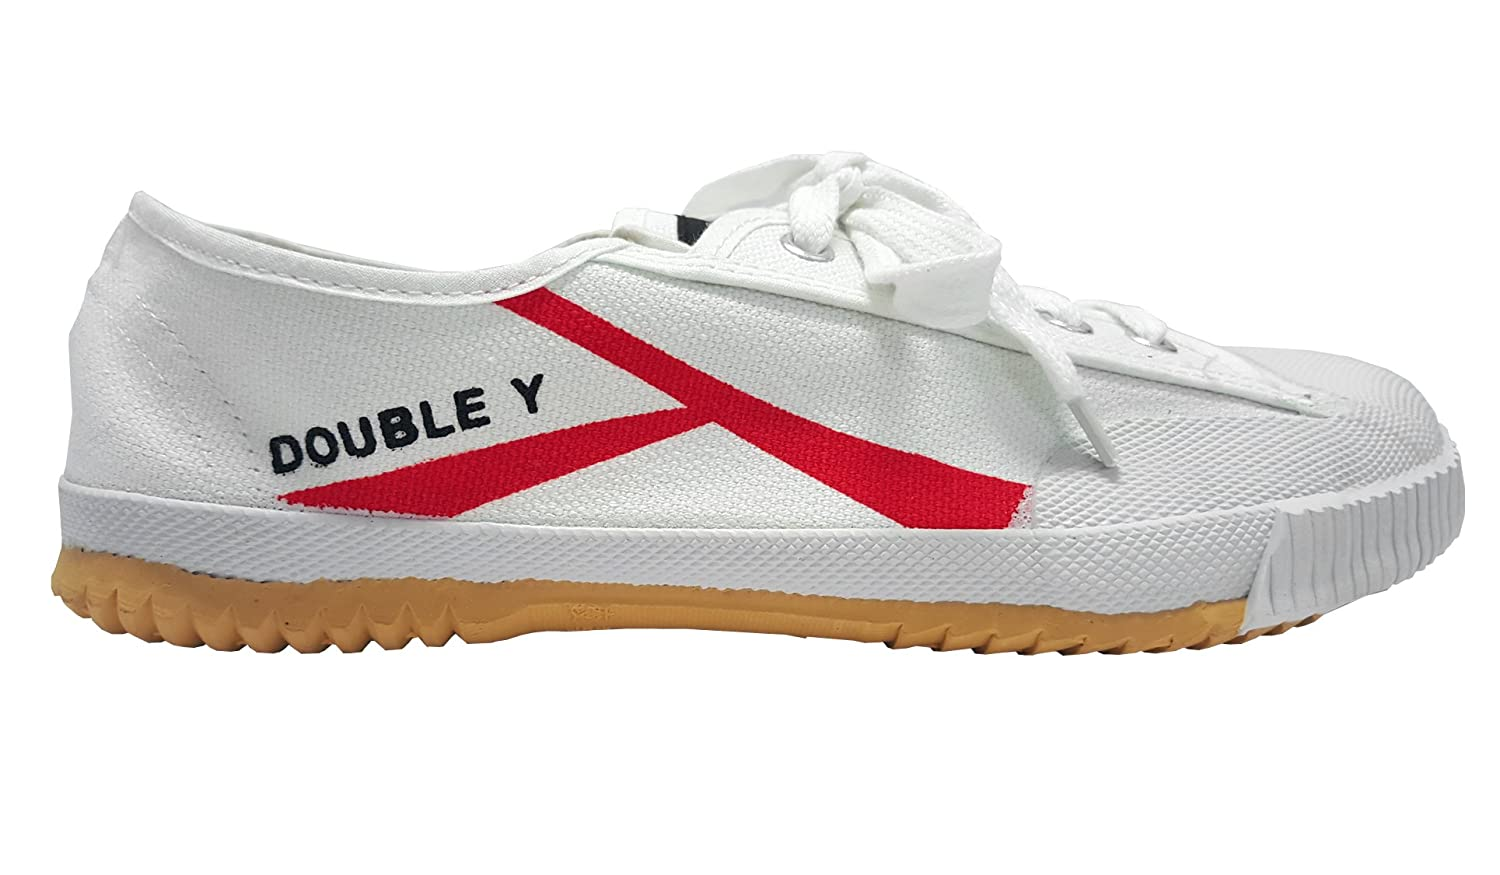 DOUBLE Y Chaussures Kung Fu Blanches